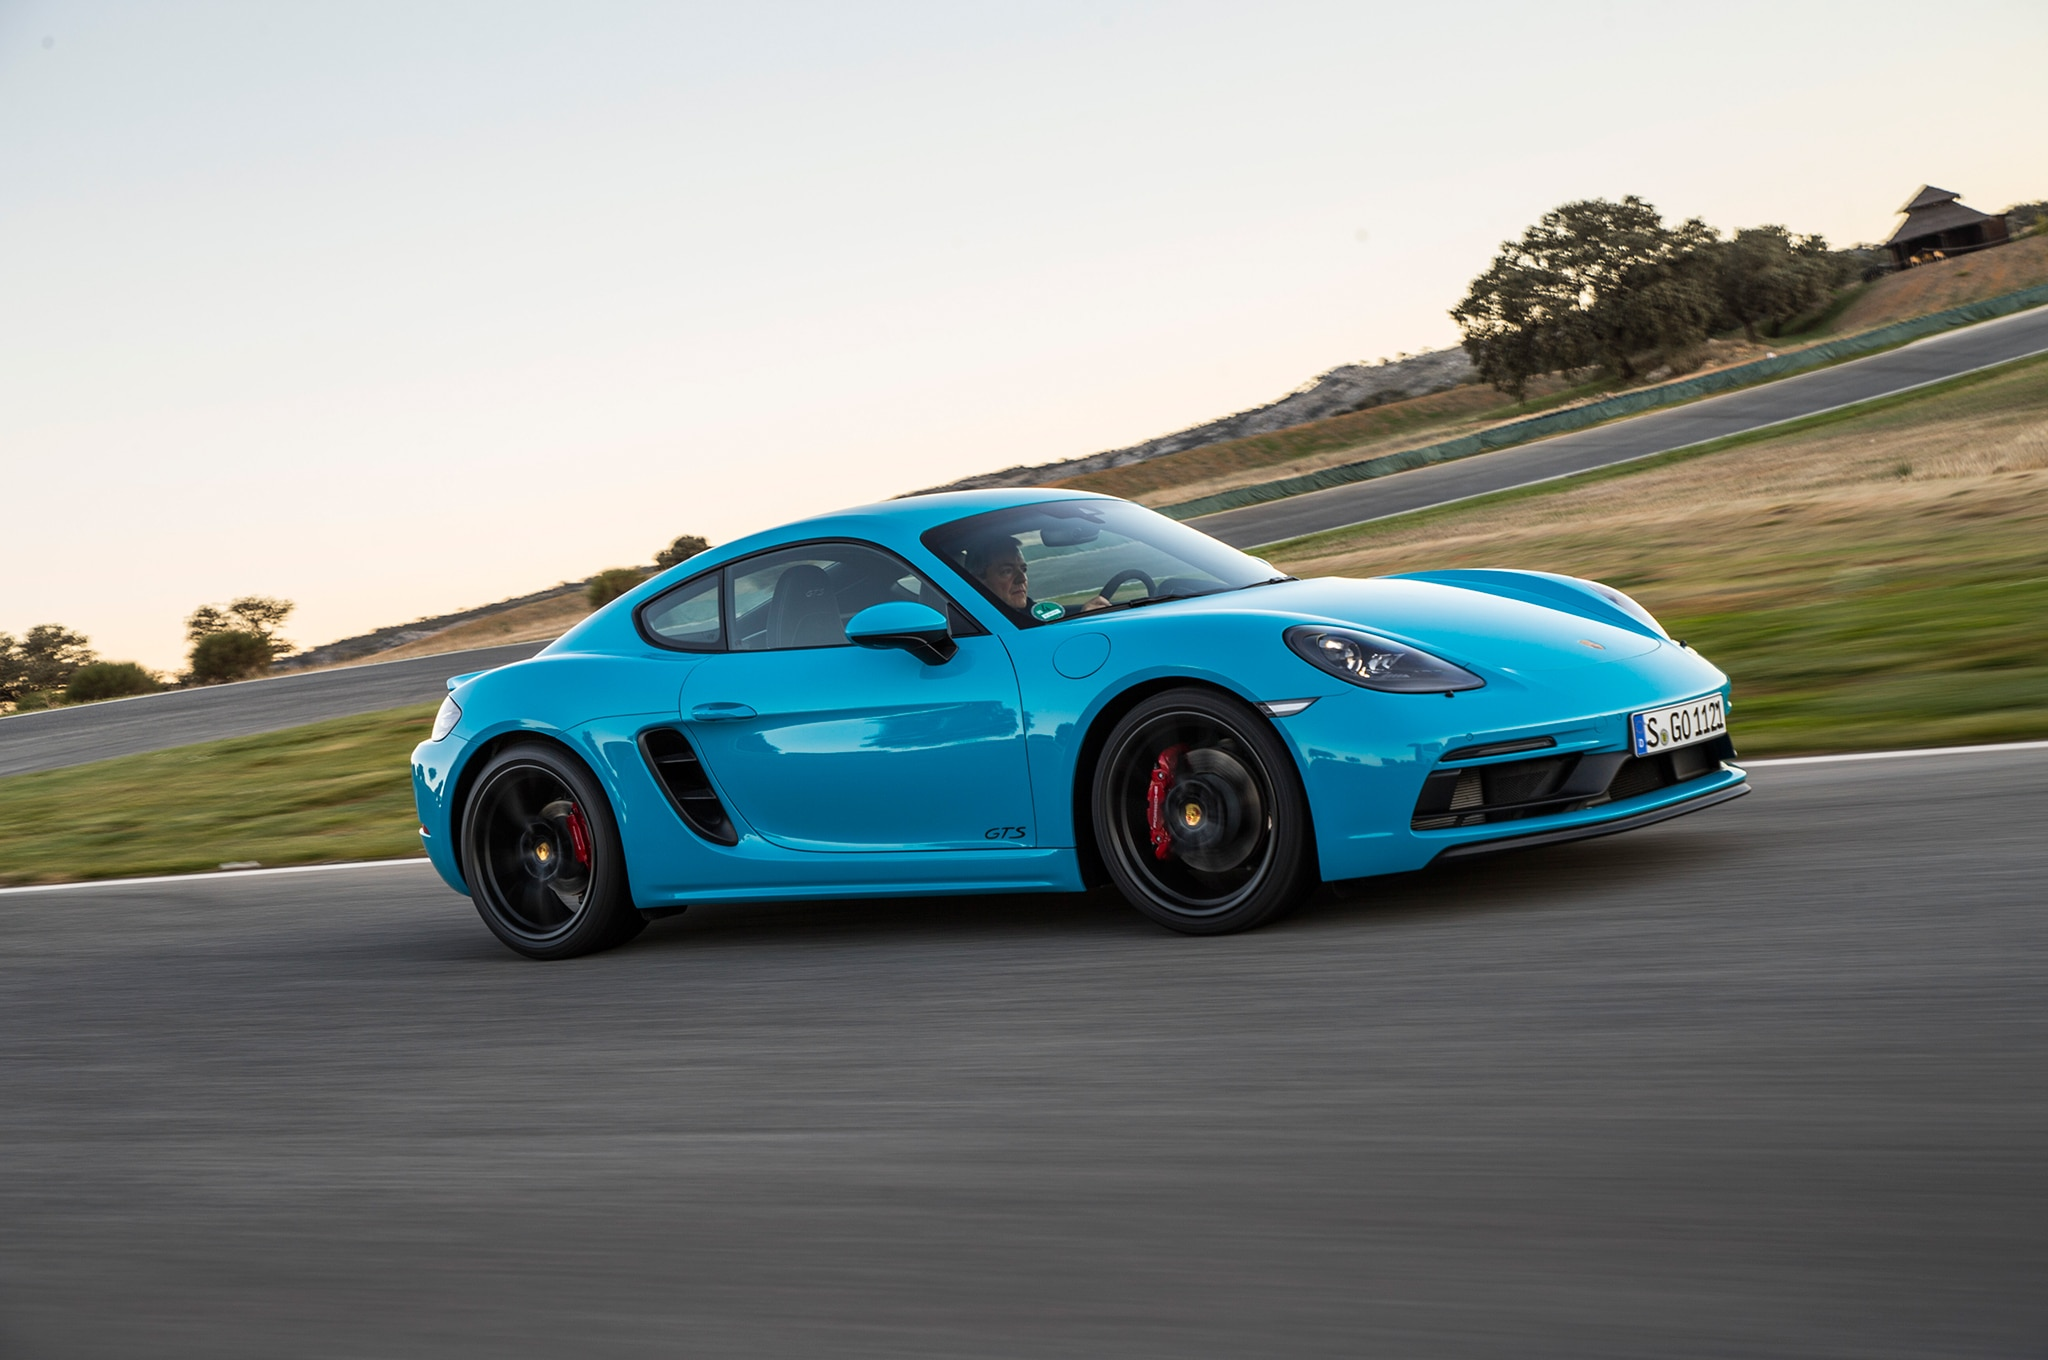 2018 Porsche 718 Cayman GTS Side In Motion 03